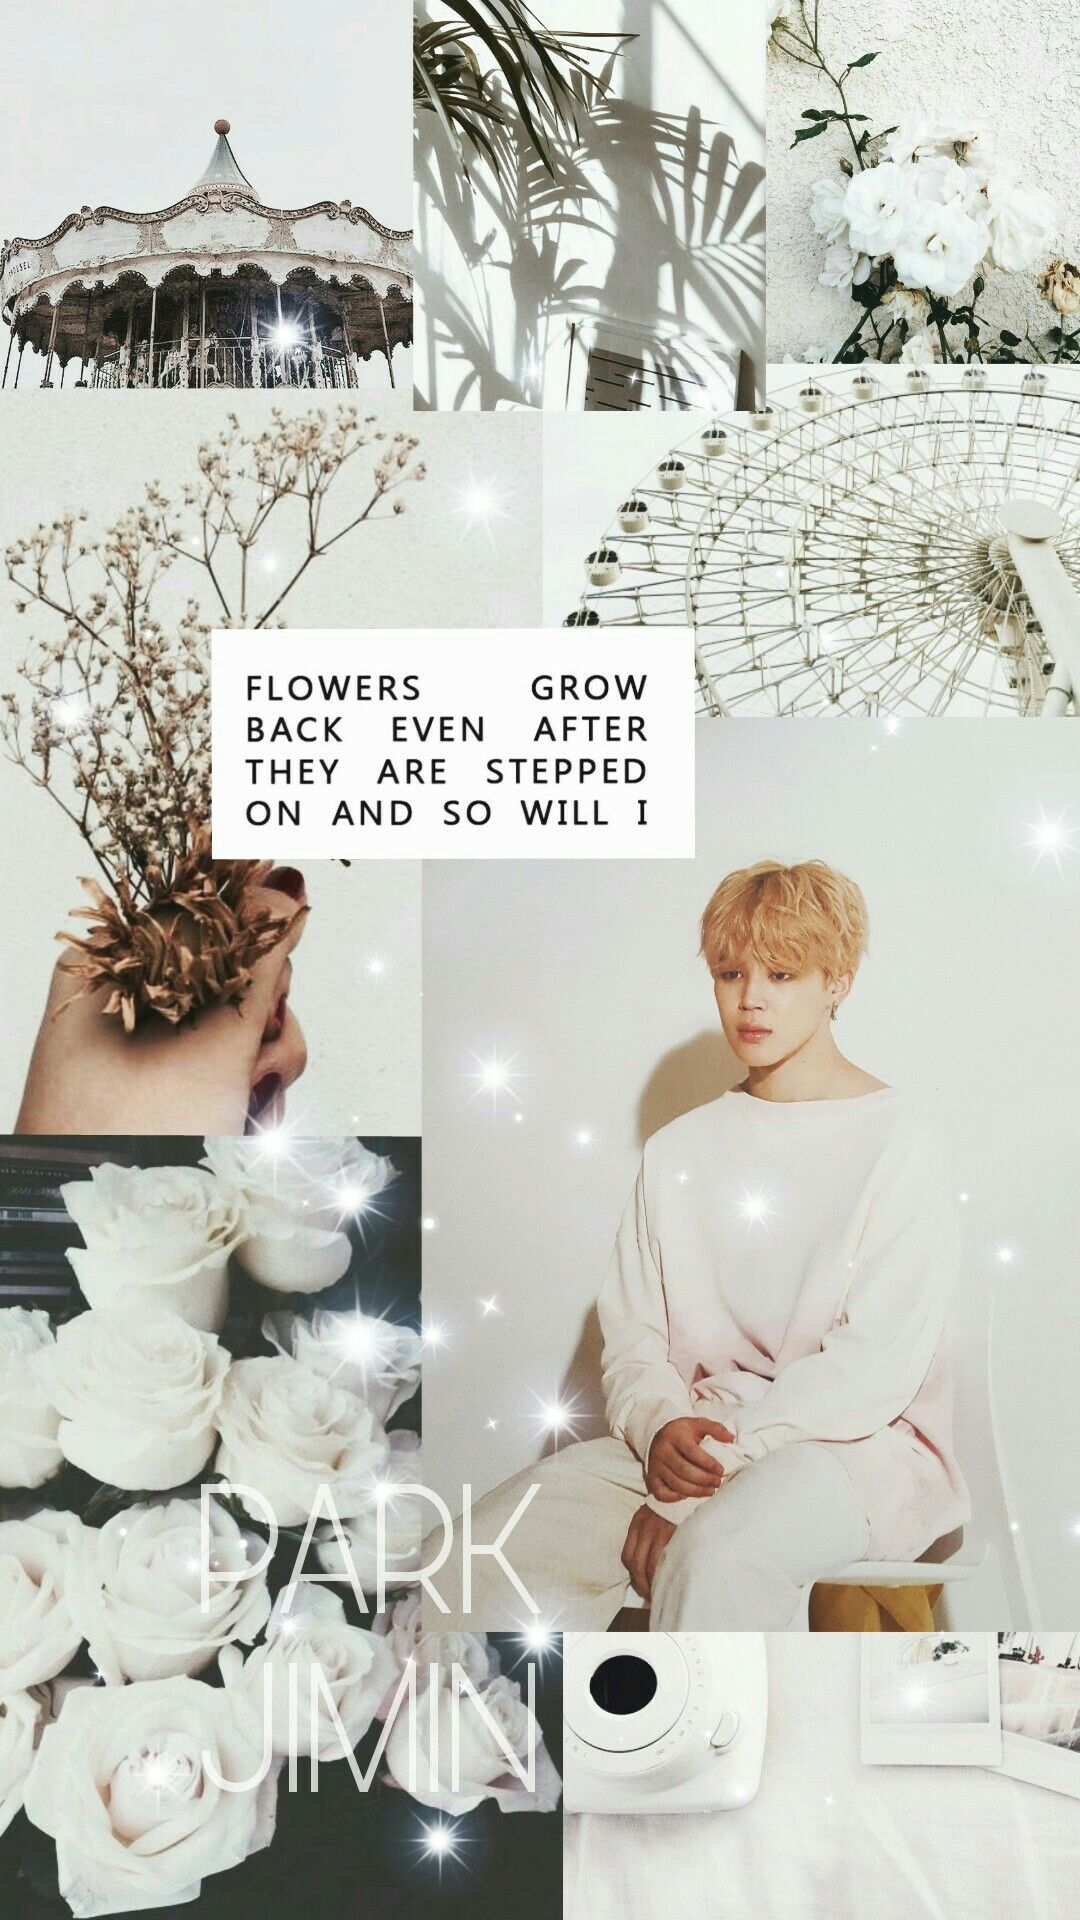 Park Jimin BTS white aesthetic wallpaper lockscreen i love